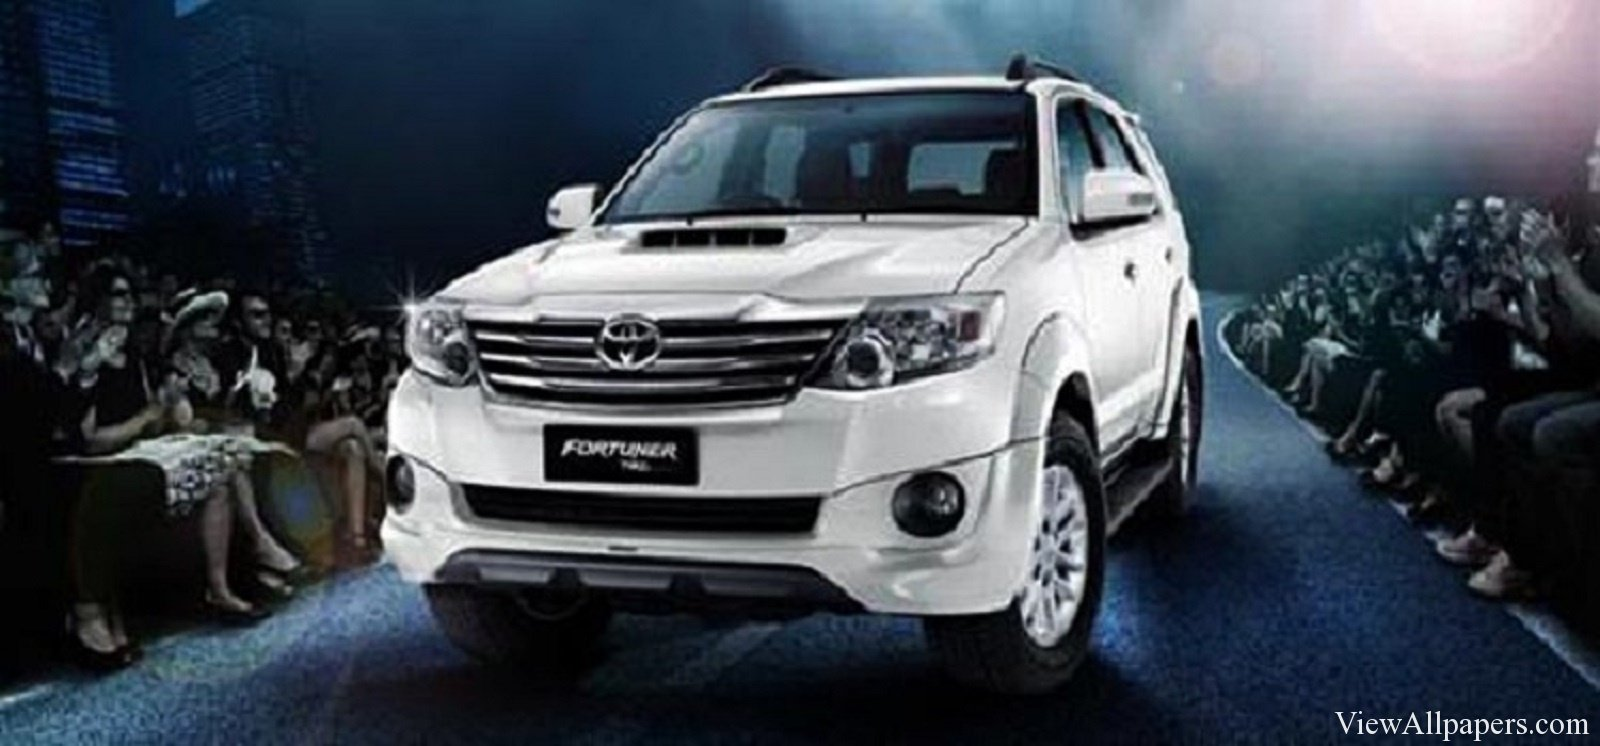 Download 2016 Toyota Fortuner High Resolution Wallpaper Download